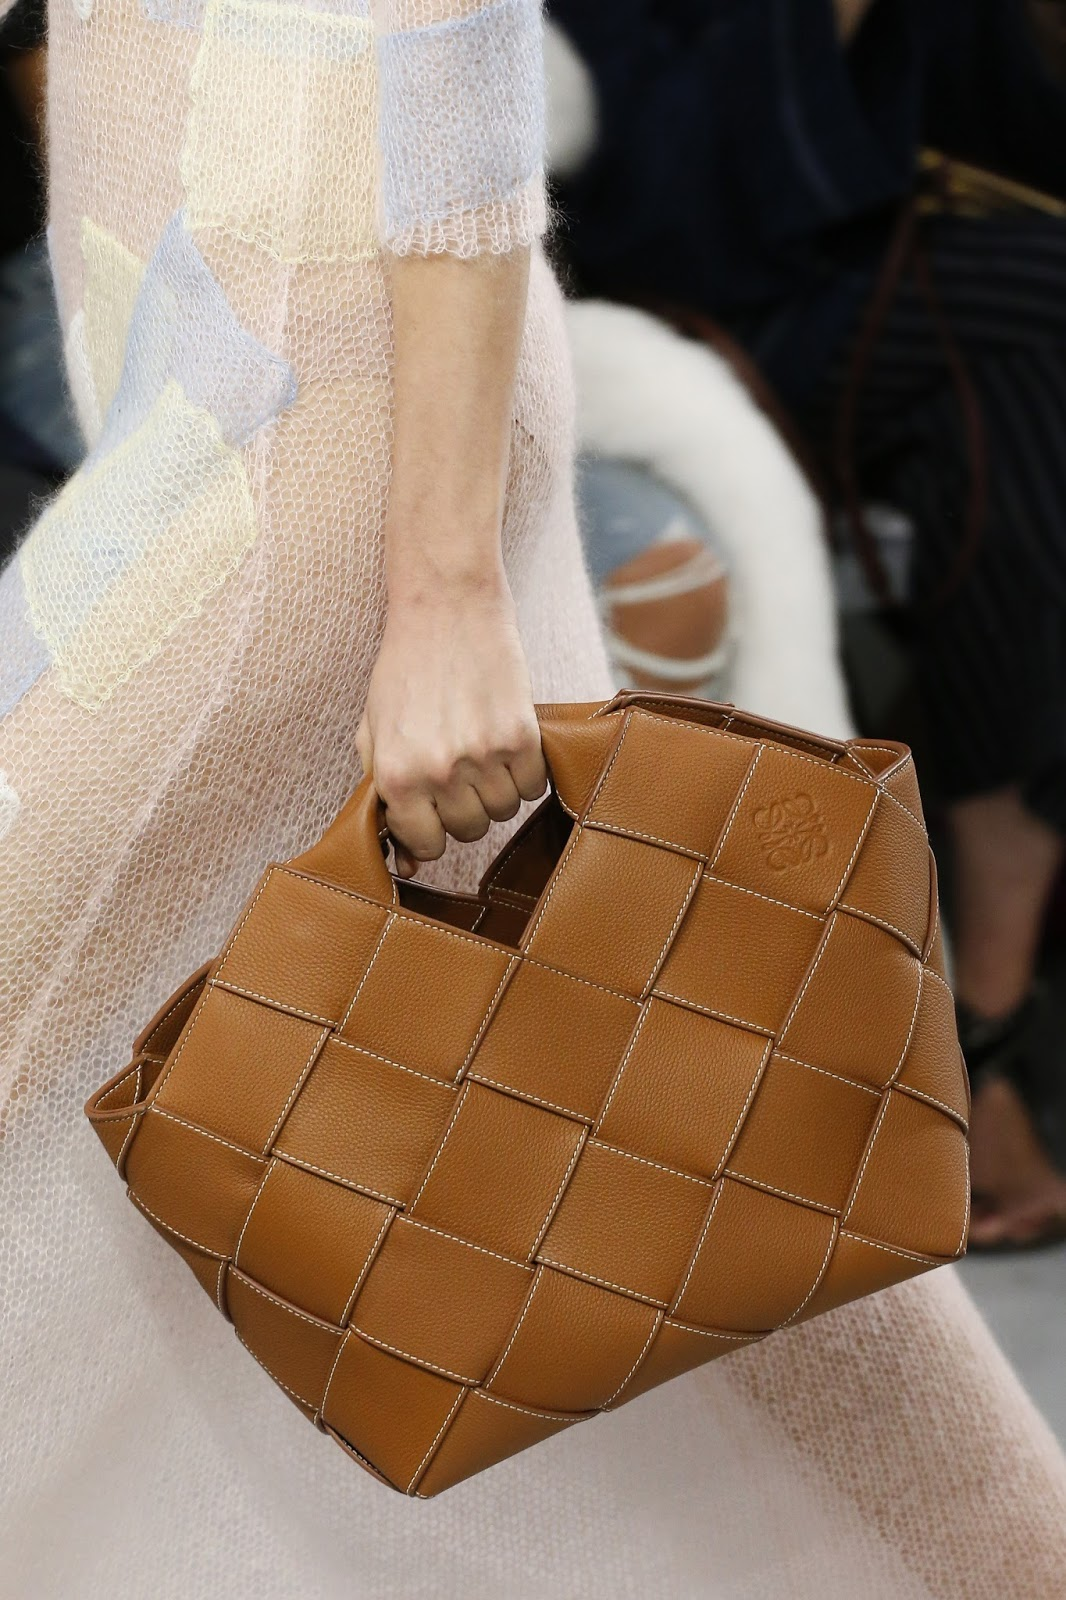 BagAddicts Anonymous: #PFW: Loewe's Spring/Summer 18 Bags ...